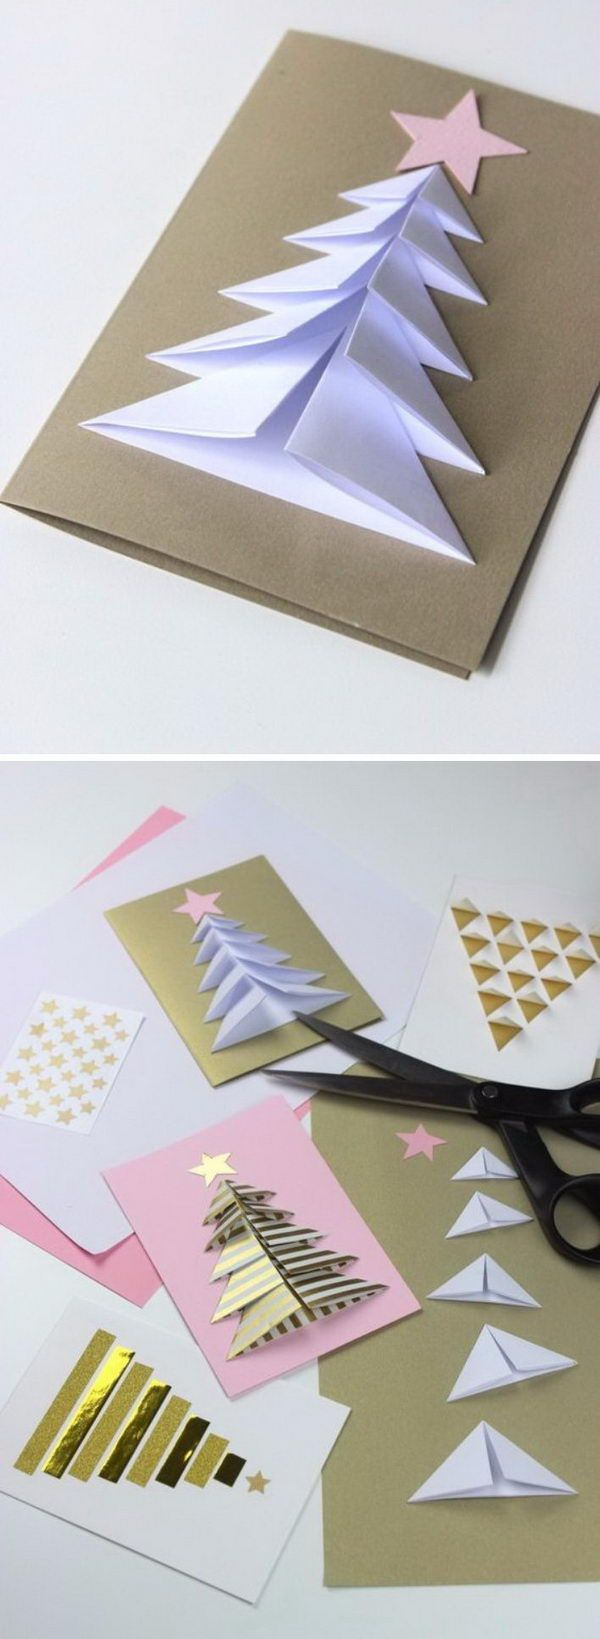 Xmas Card Ideas To Make Part - 37: 20 Handmade Christmas Card Ideas